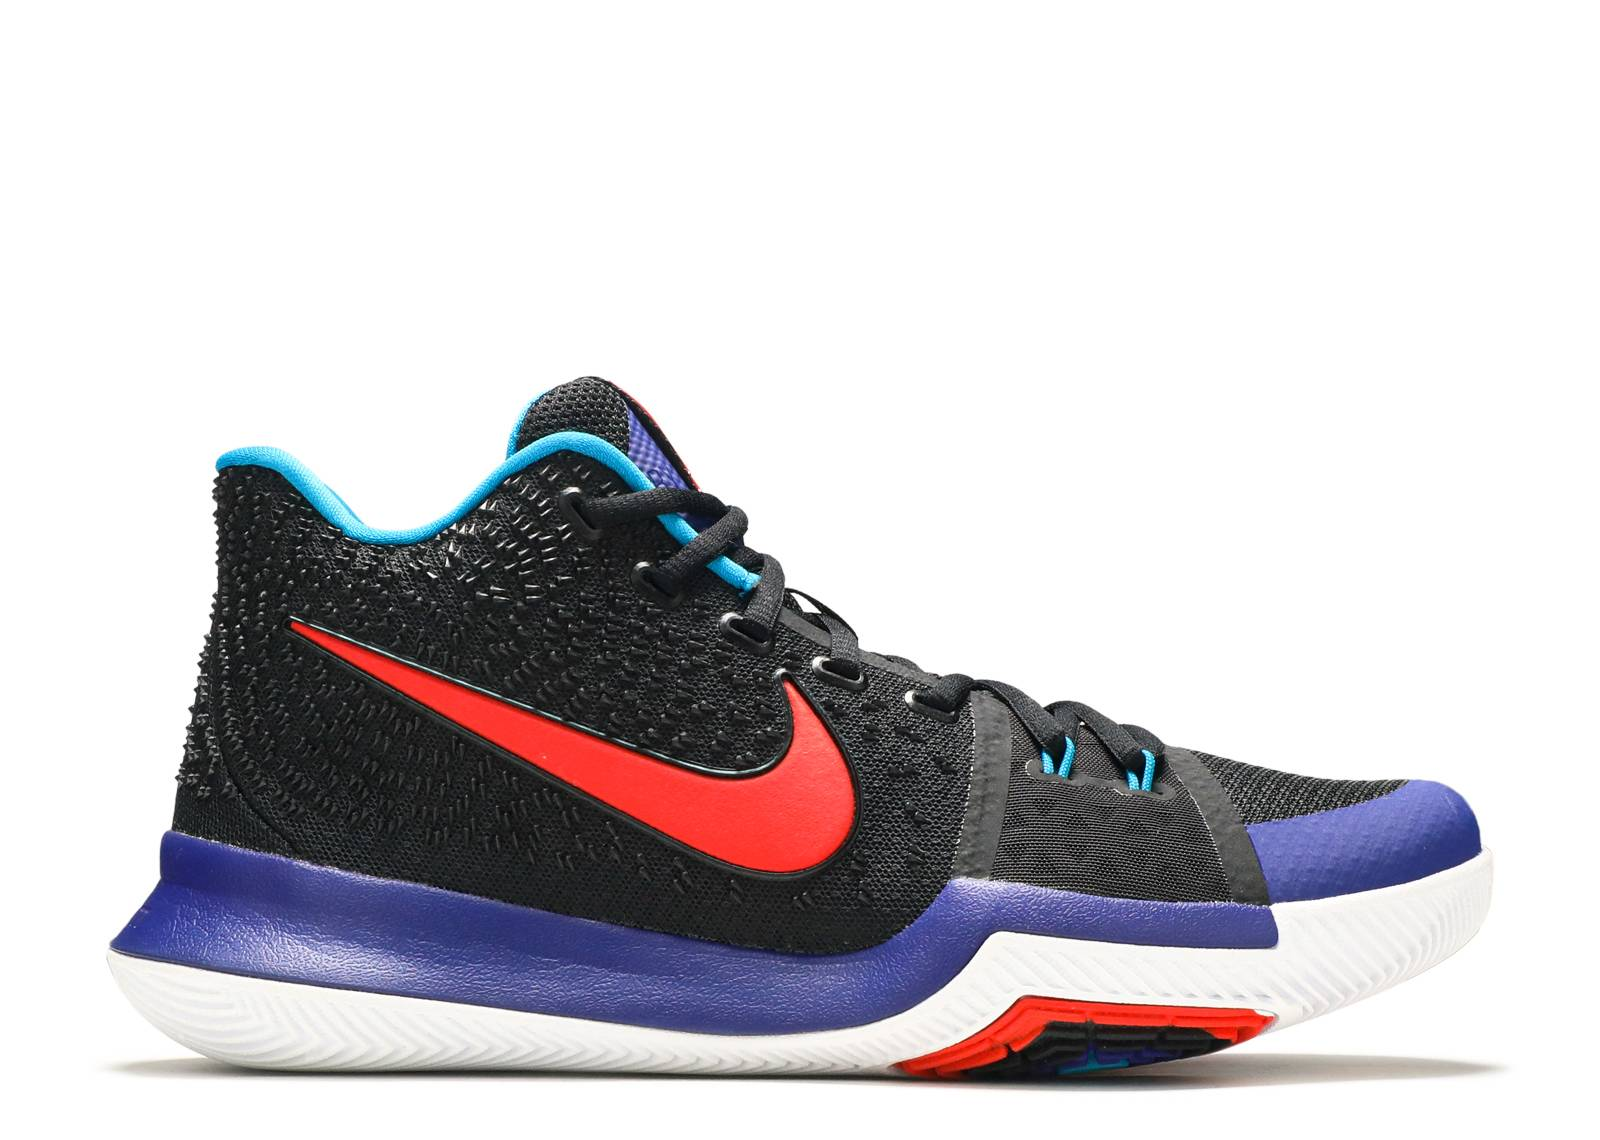 148b11fa162a Kyrie 3 - Nike - 852395 007 - black team orange-concord